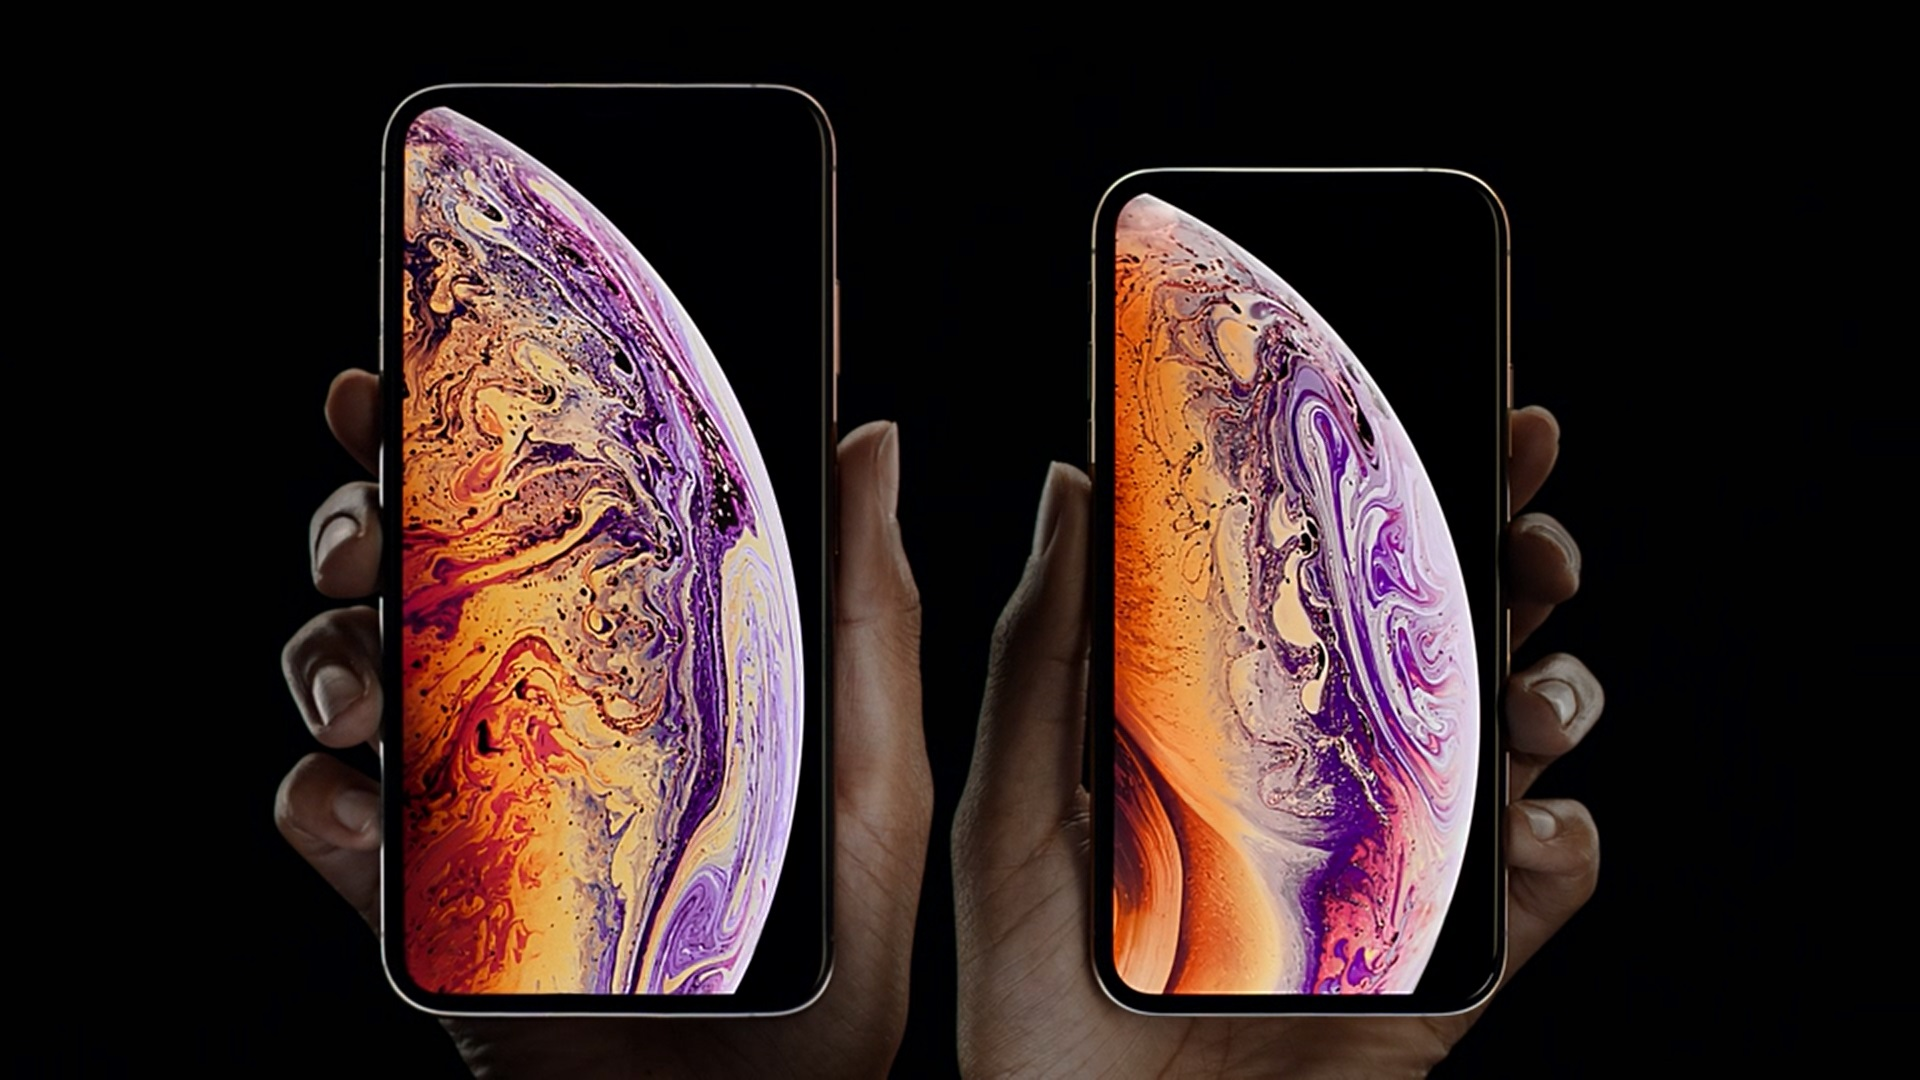 iphone xs iphone xs max 5 8 6 5 hdr itmedia mobile. Black Bedroom Furniture Sets. Home Design Ideas